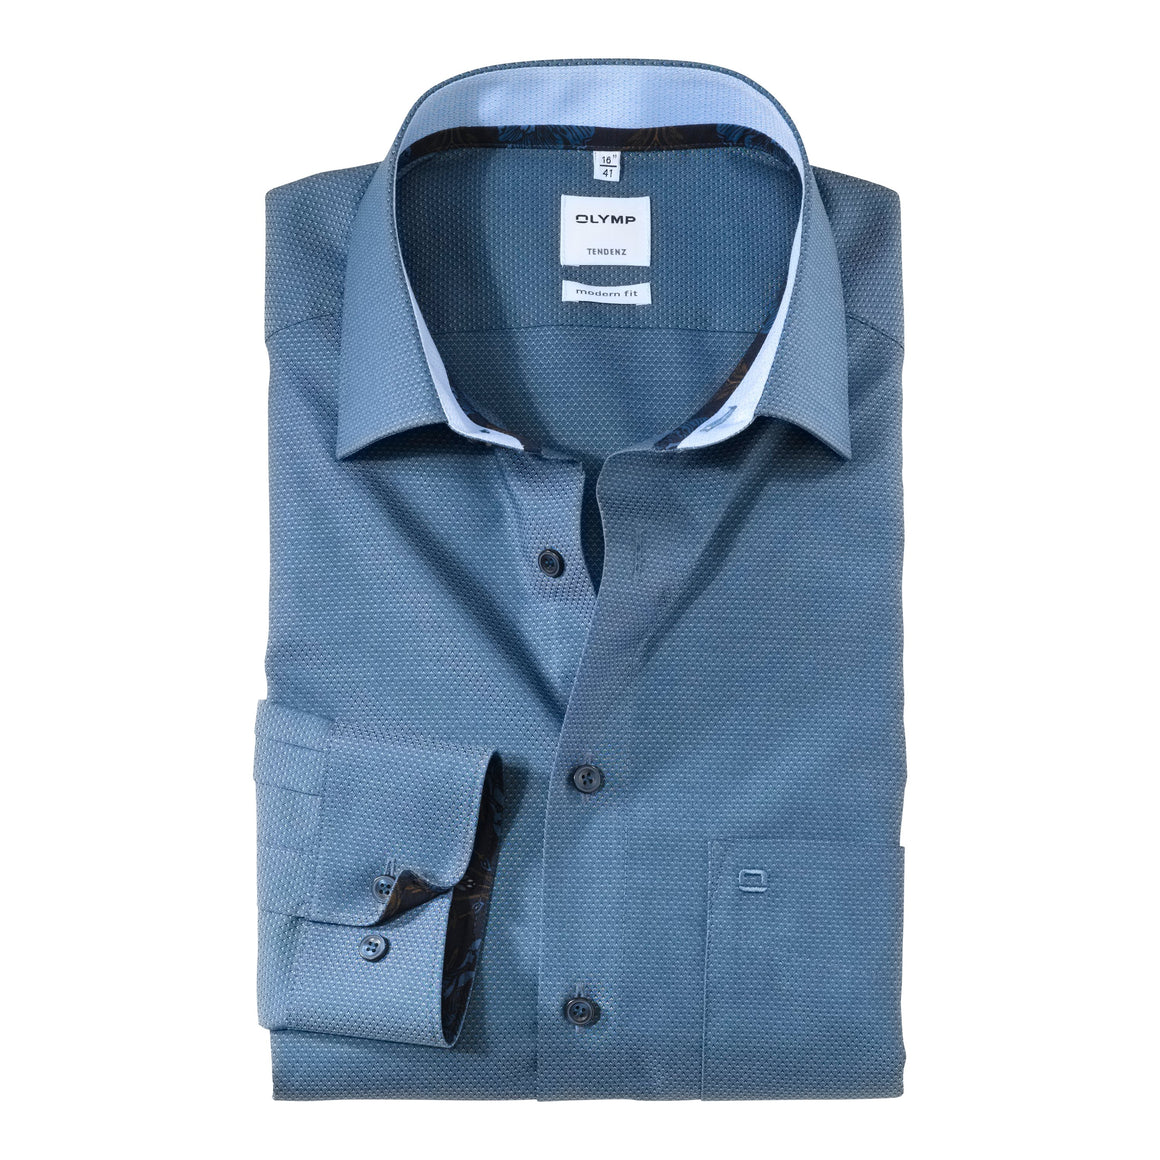 Pyramid Texture Shirt for Men in Blue